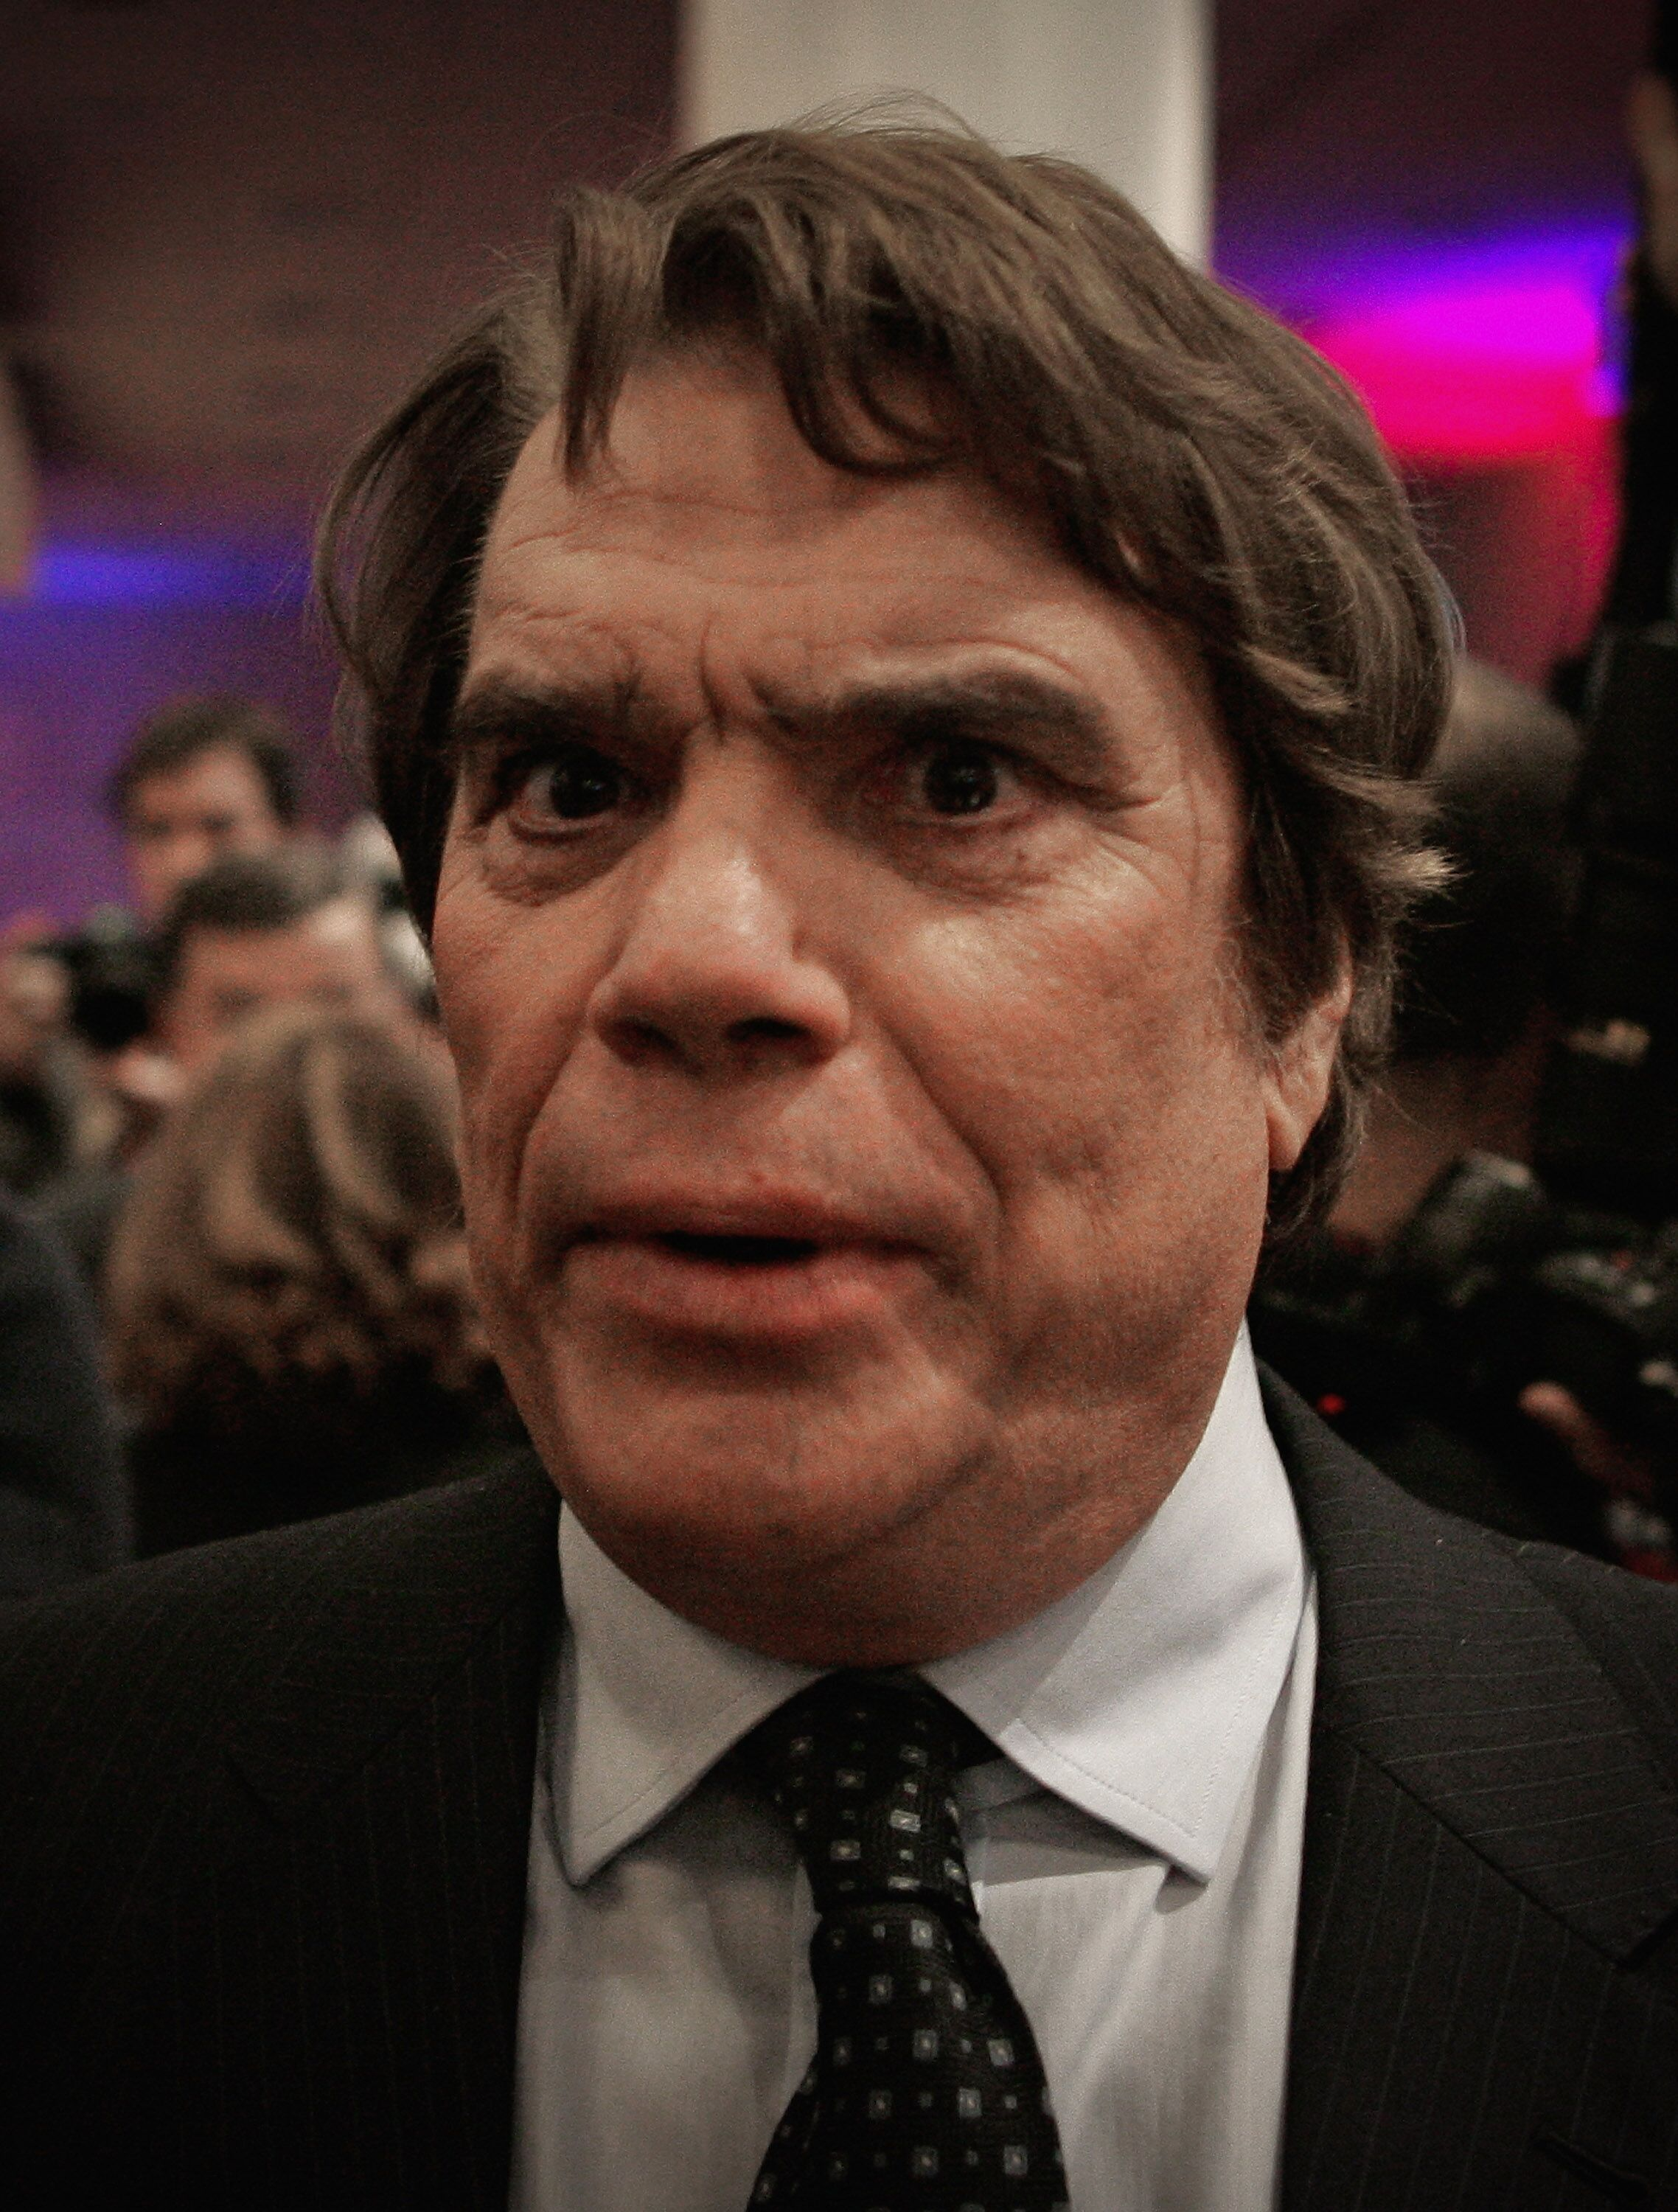 Bernard Tapie assiste à un dîner de la République le 9 décembre 2010 à Paris, France. | Photo : Getty Images